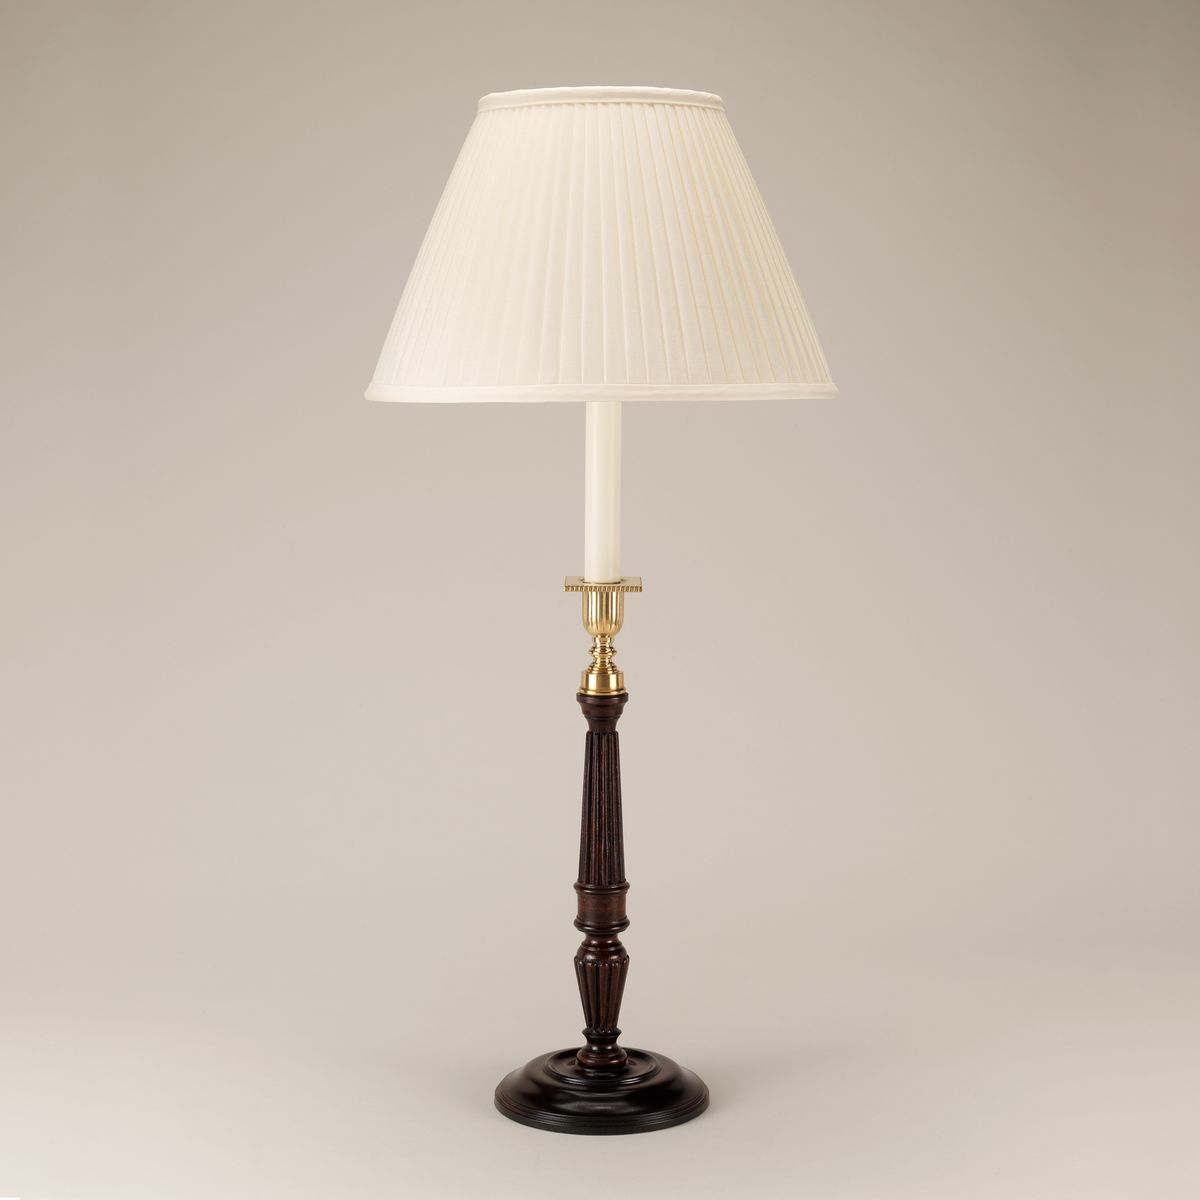 Chilworth Candlestick Table Lamp - Mahogany | Nicholas Engert Interiors